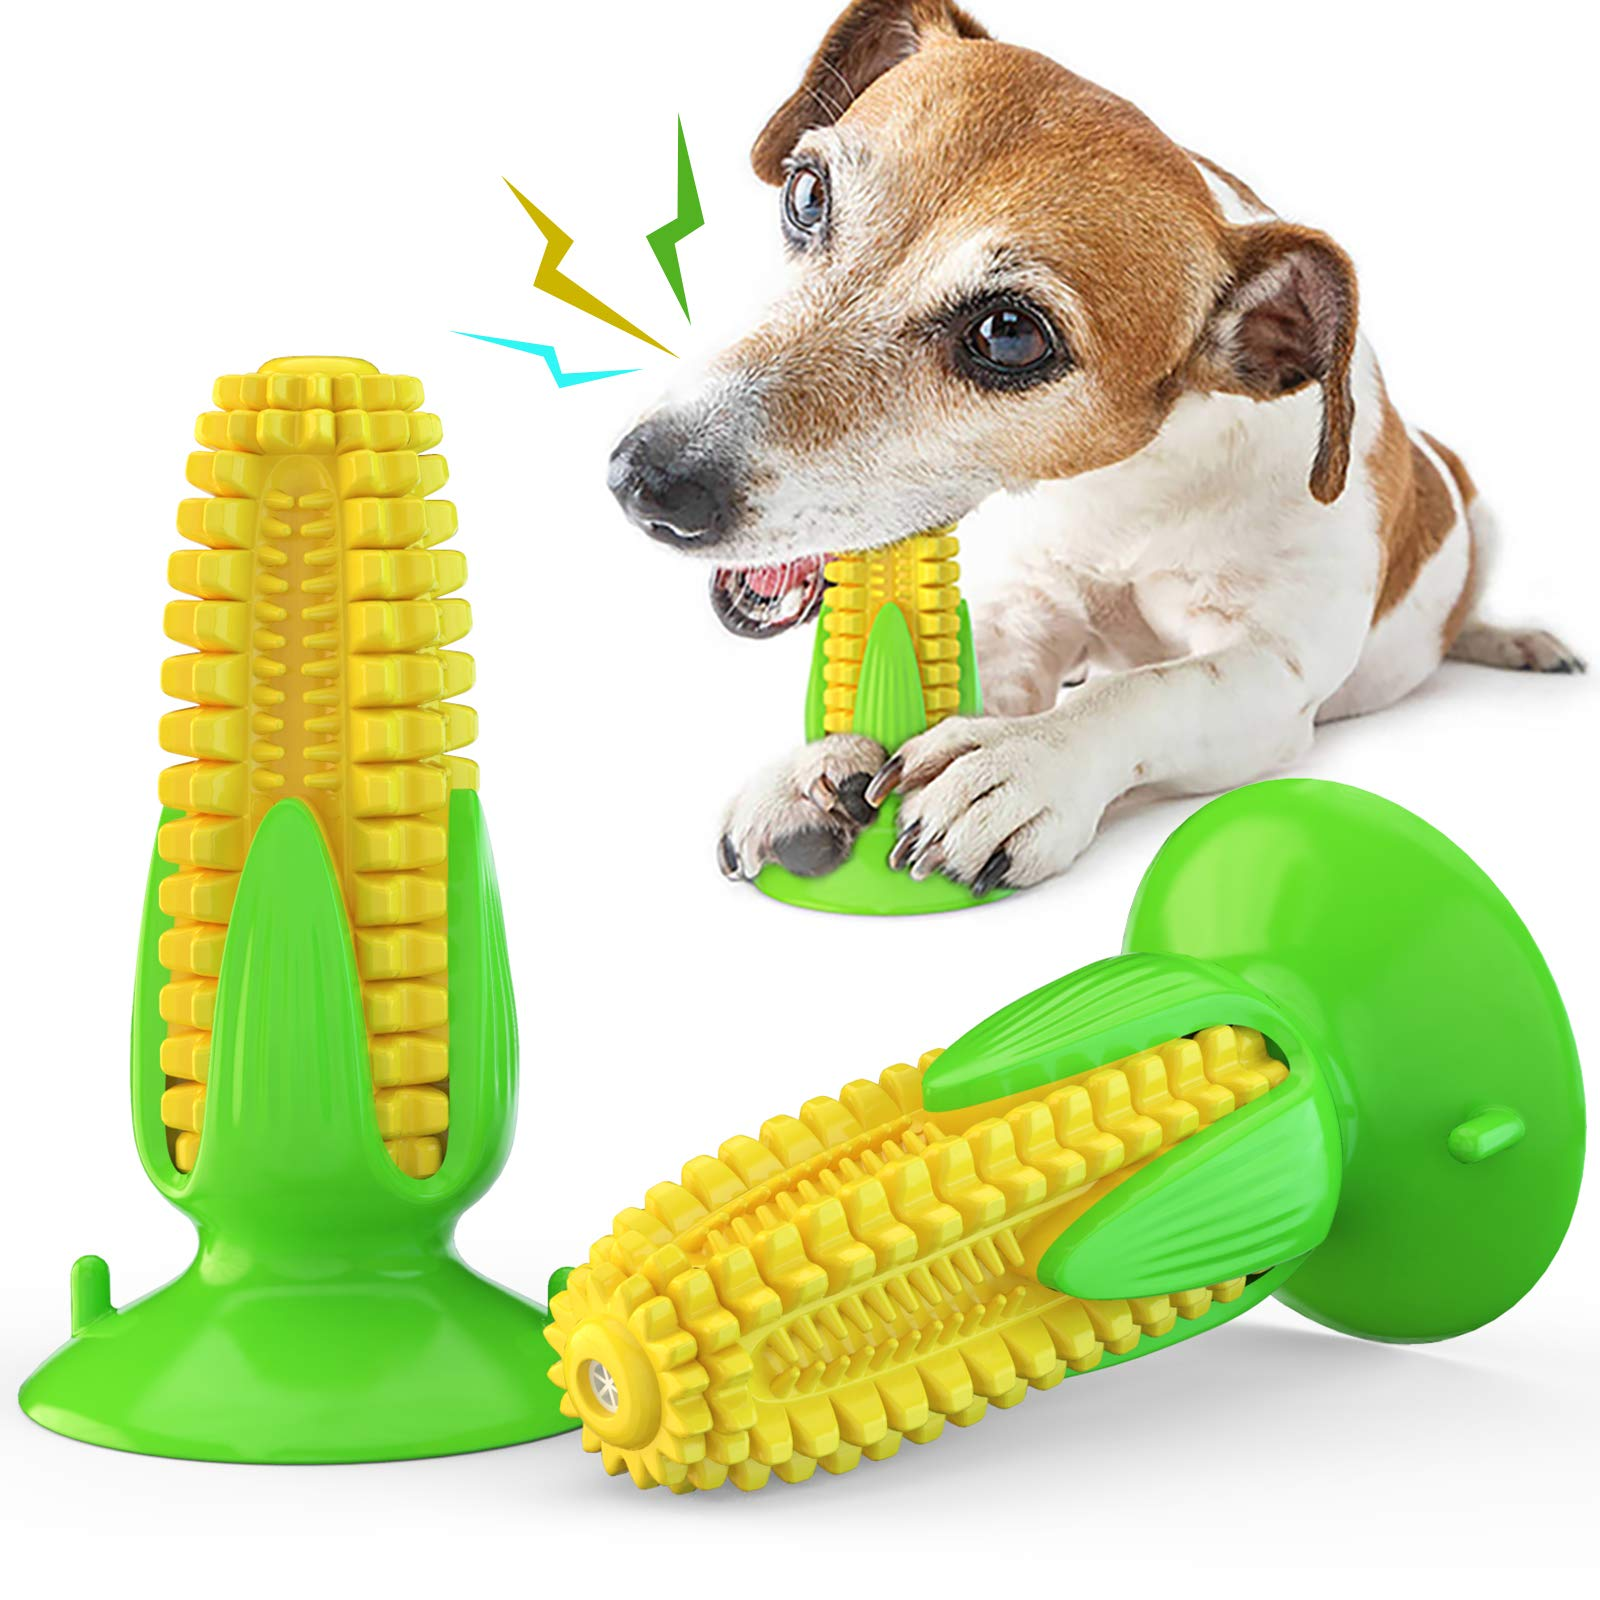 USWT Corn-Shaped Squeaky Dog Toys Puppy Toys Dogs Supplies Doggy Chew Cotton